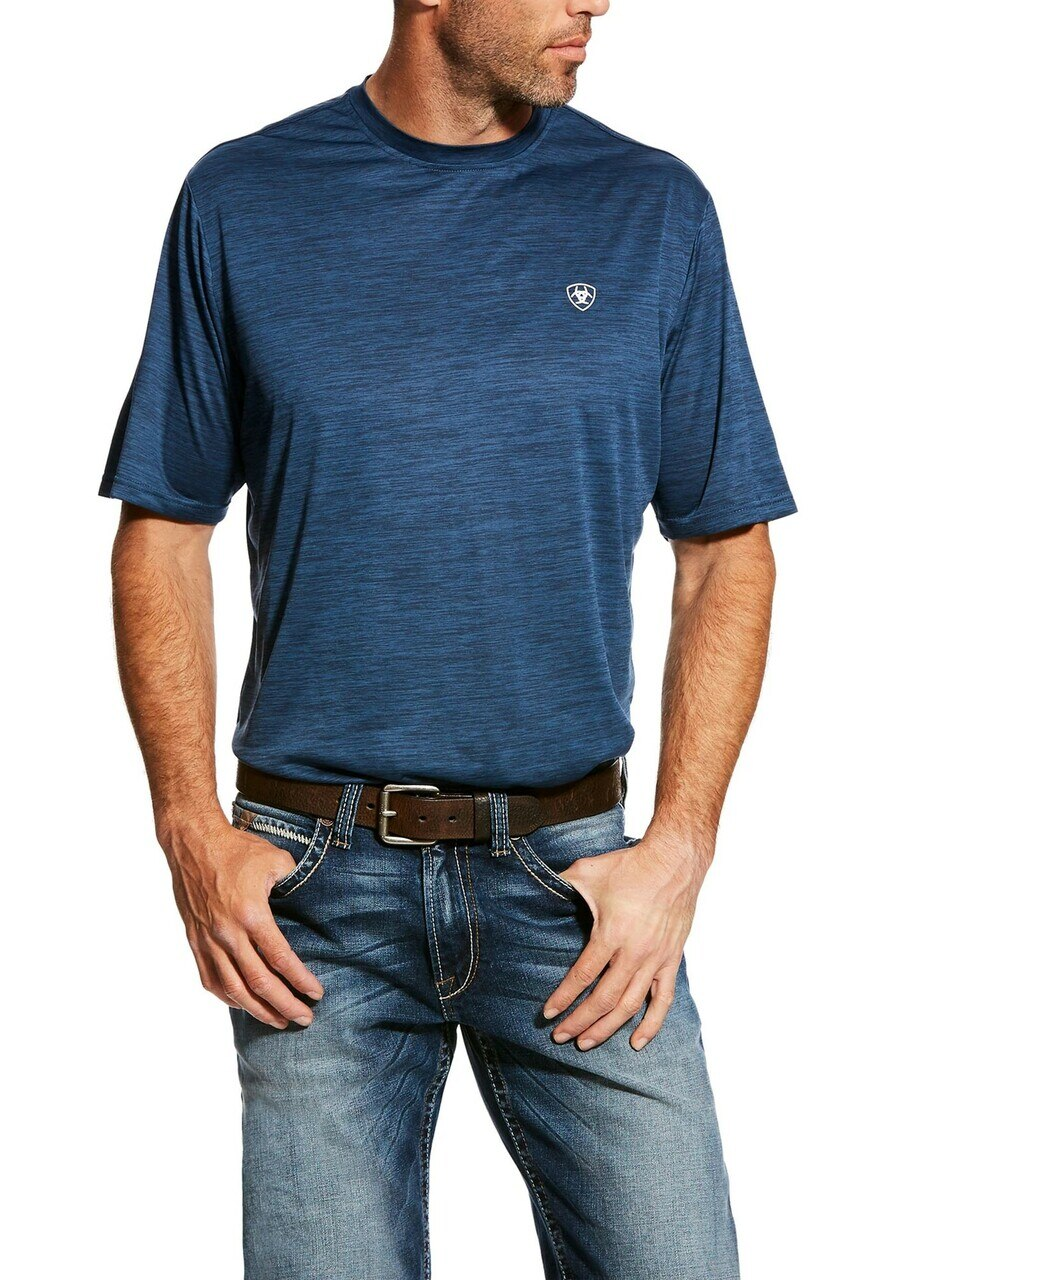 Ariat Men's Heat Series Navy TEK AC Shirt